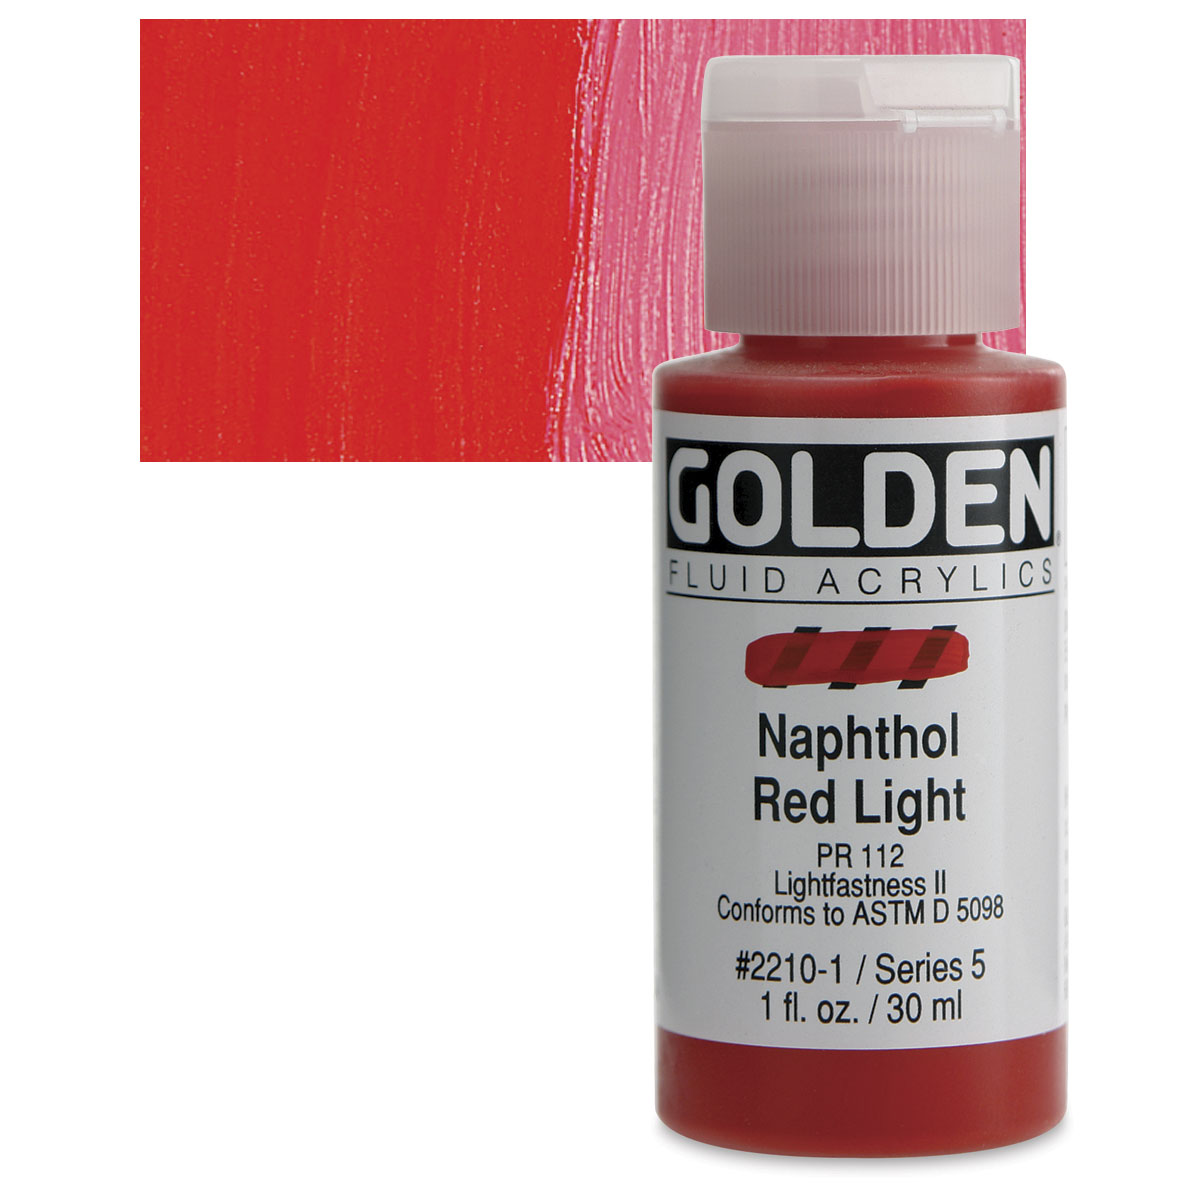 006383601 golden fluid acrylics blick art materials